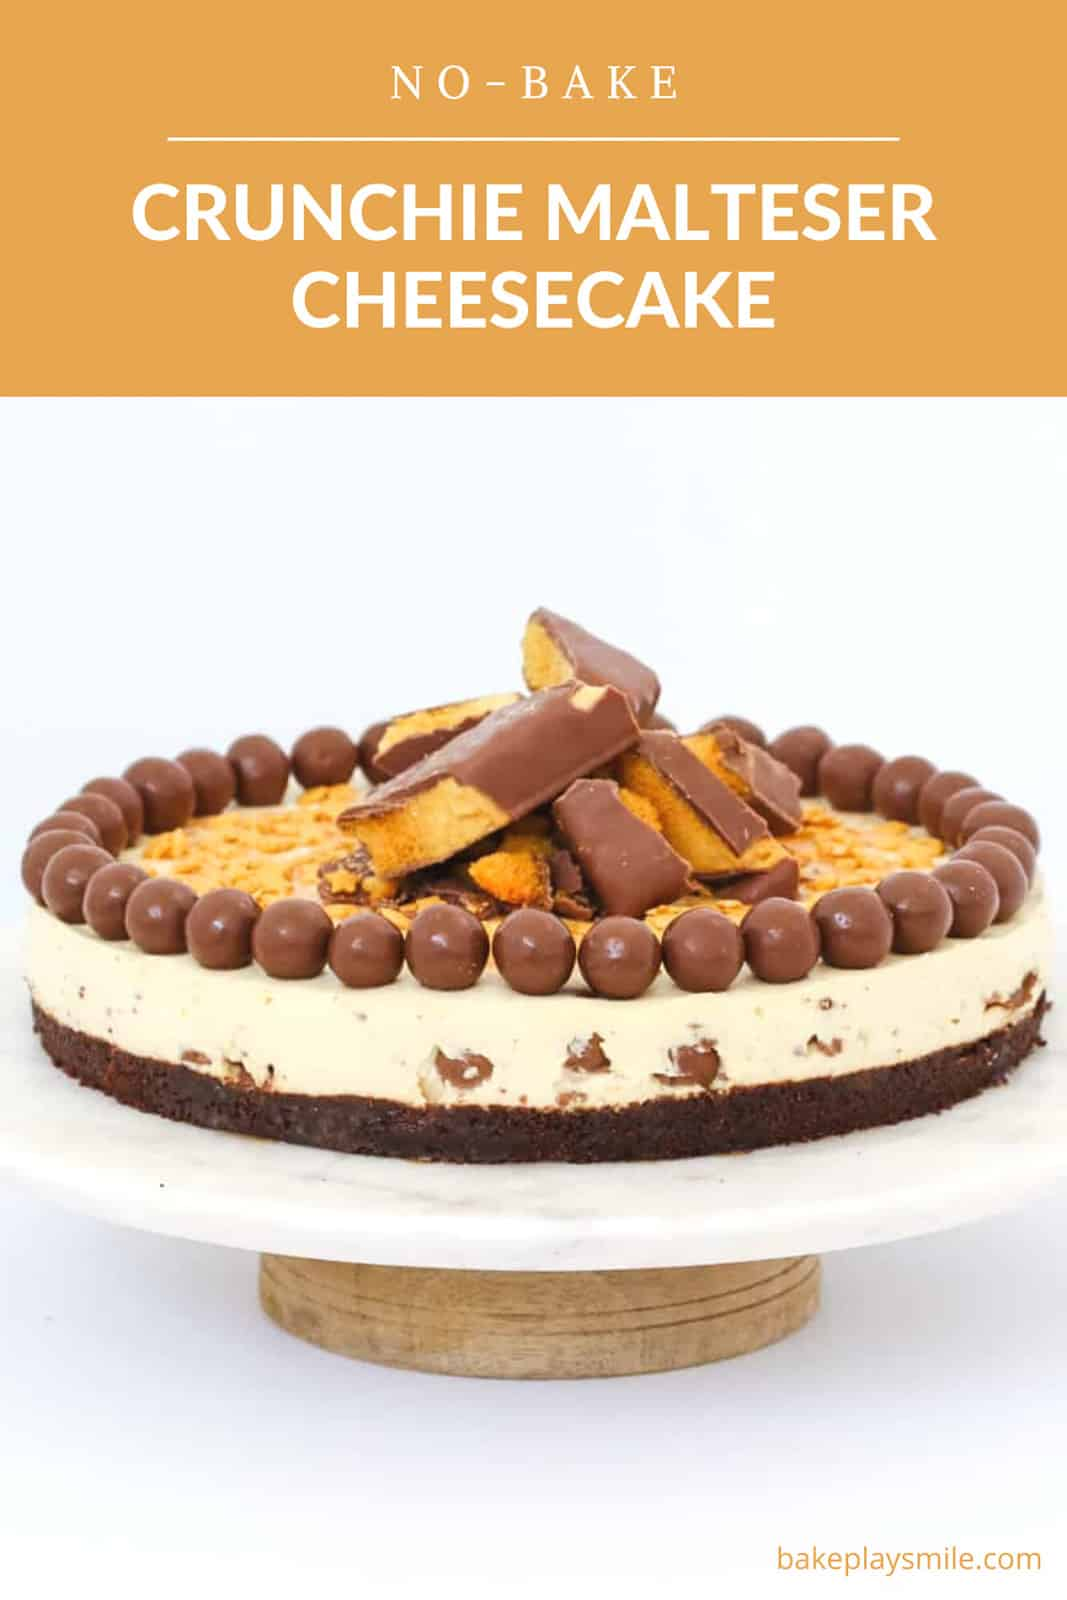 A round cheesecake with a chocolate biscuit base filled and decorated with chocolate honeycomb and malted milk balls.